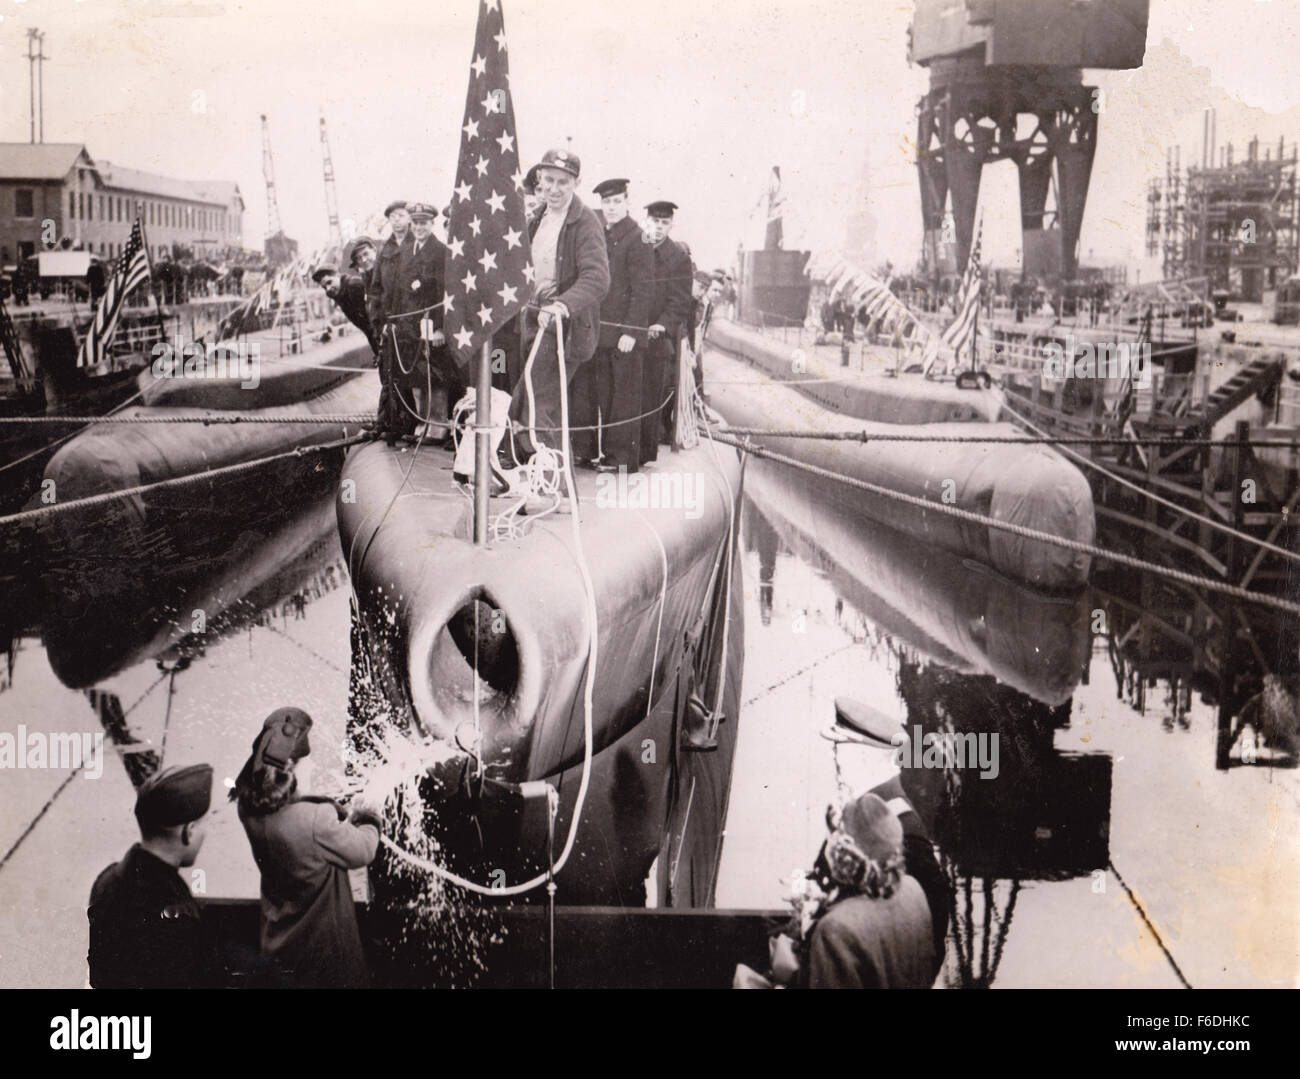 704. Launch of US Submarine ceremony. Stock Photo